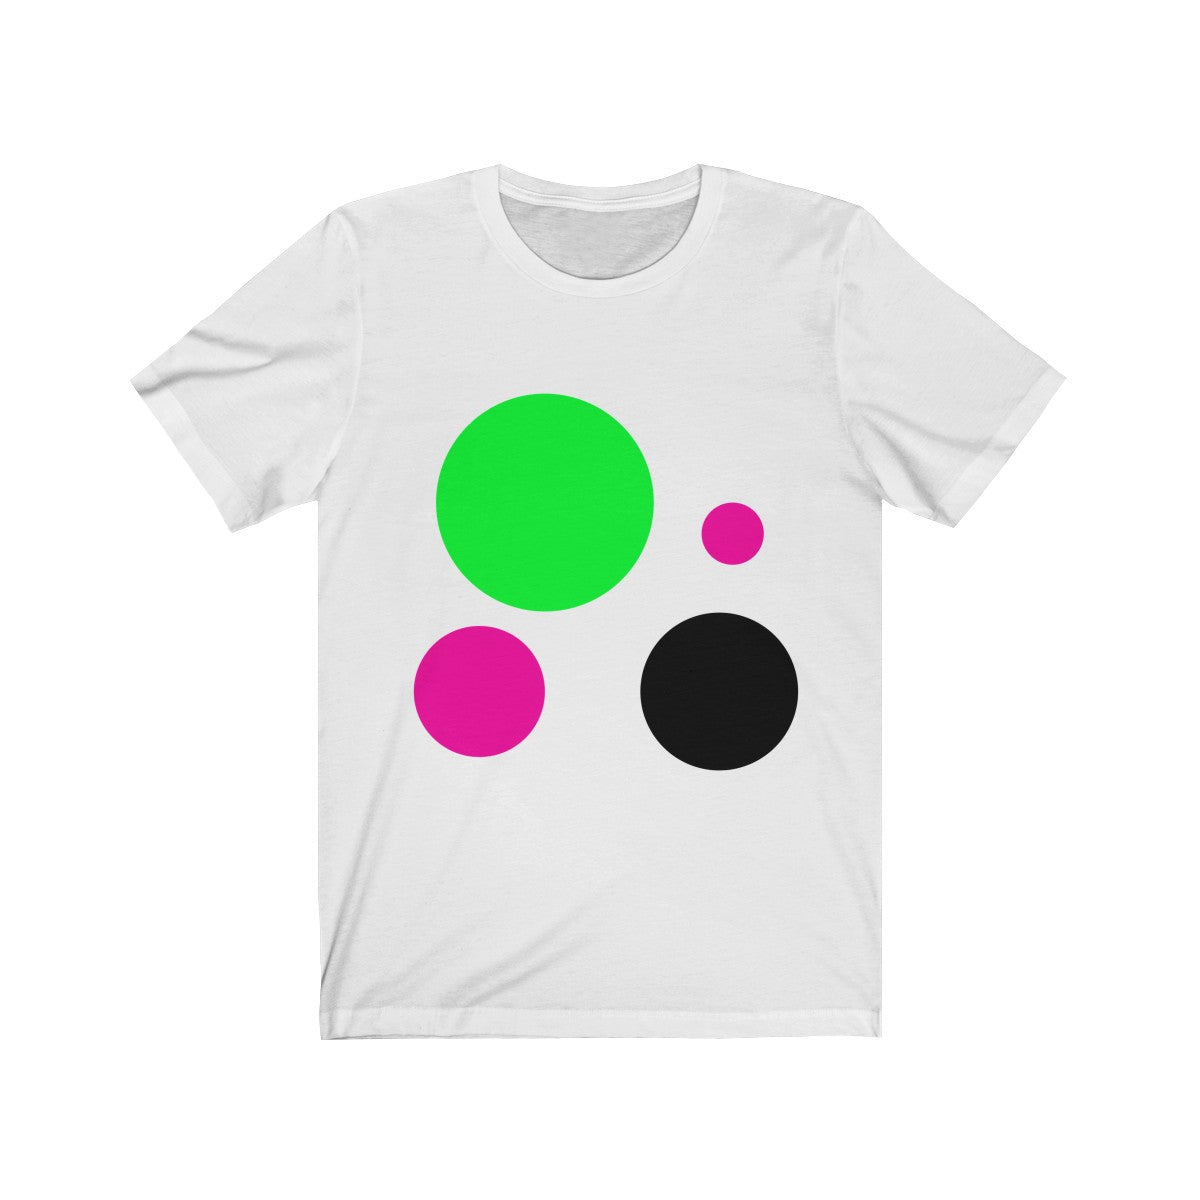 DIVERSITY Tee - White/Heather